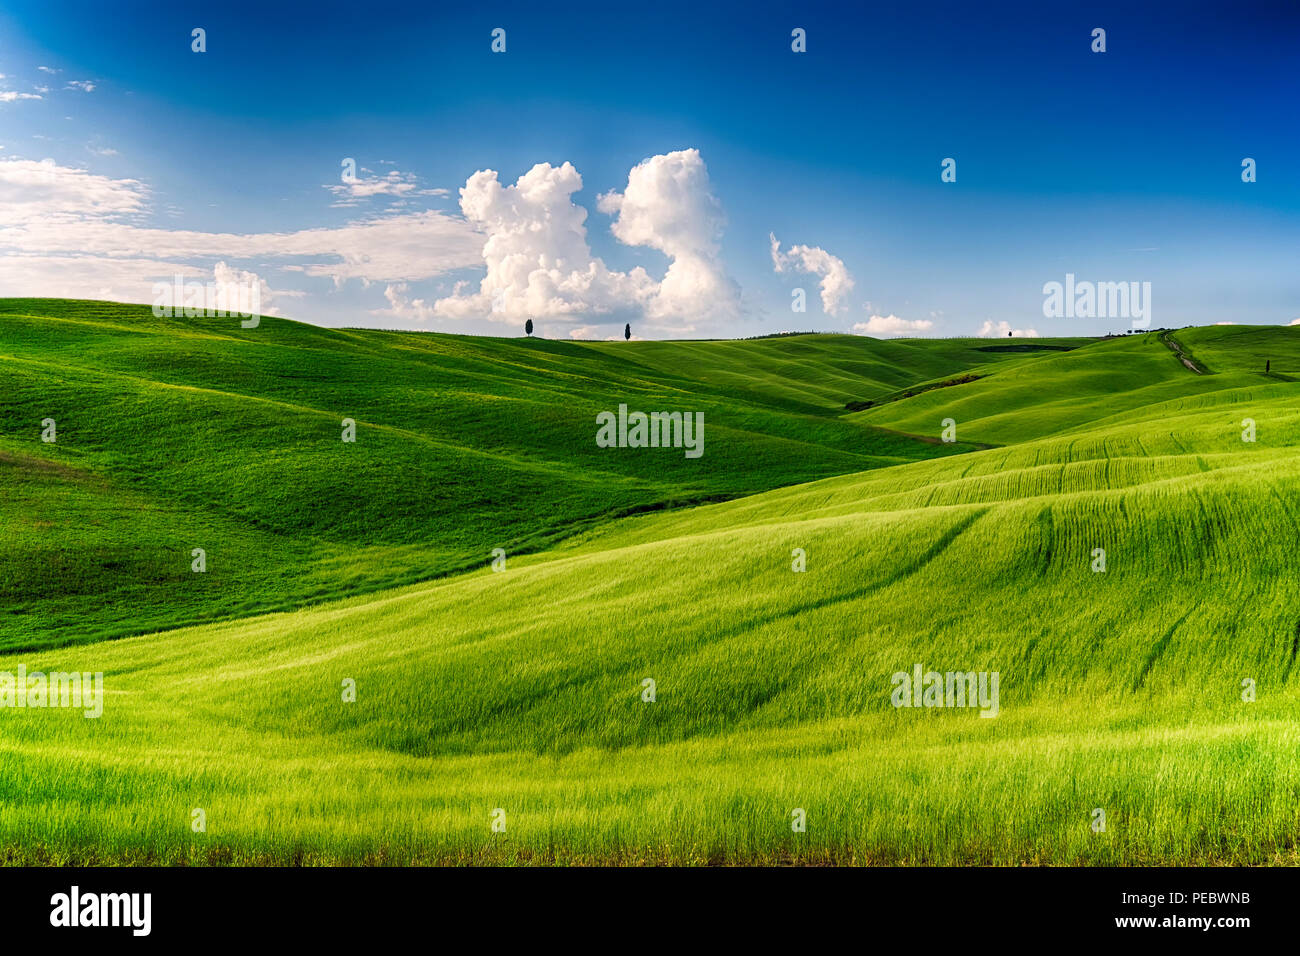 Rolling Hills with Cypress treess and Wheat Fileds, San Quircio D'Orcia, Tuscany, Italy - Stock Image